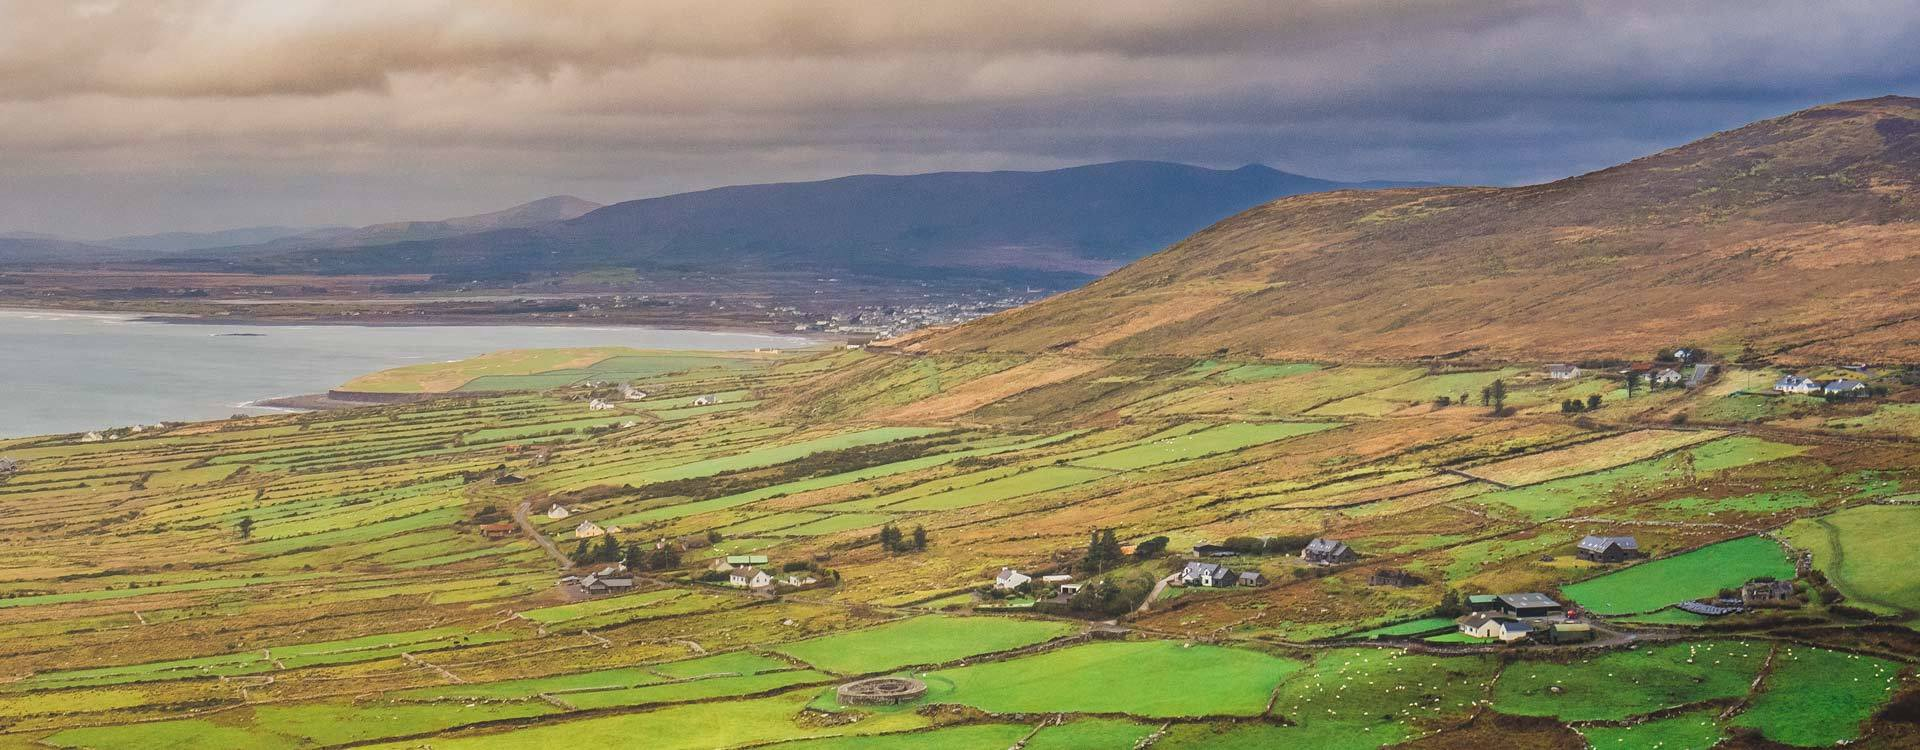 6 Day Tours of Ireland